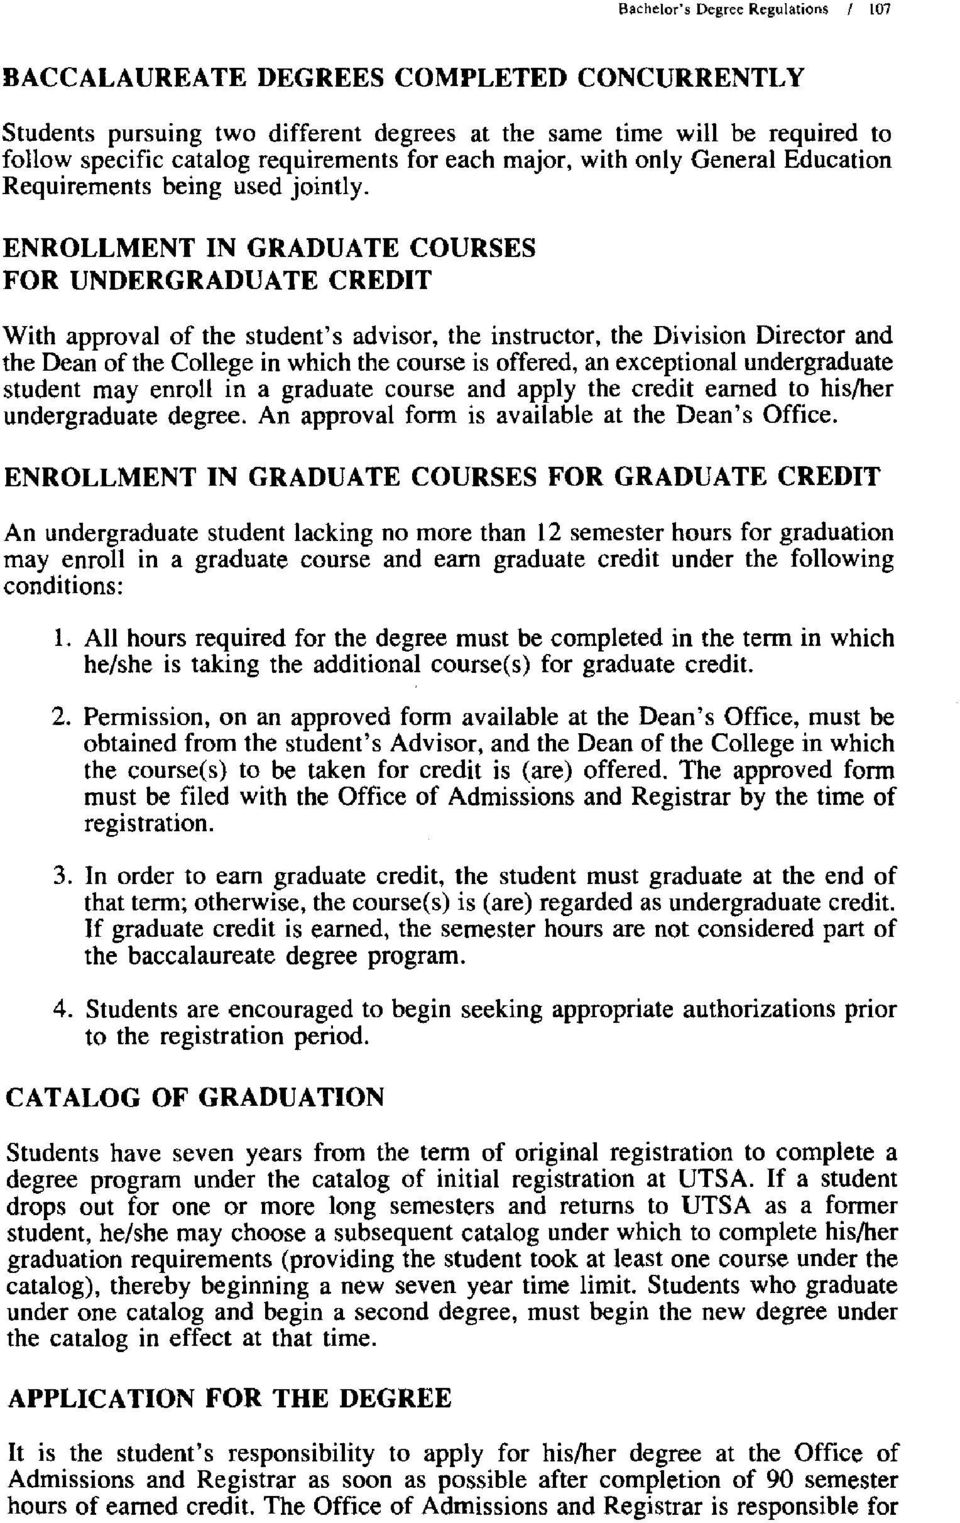 General Education Requirements being used joint!y.